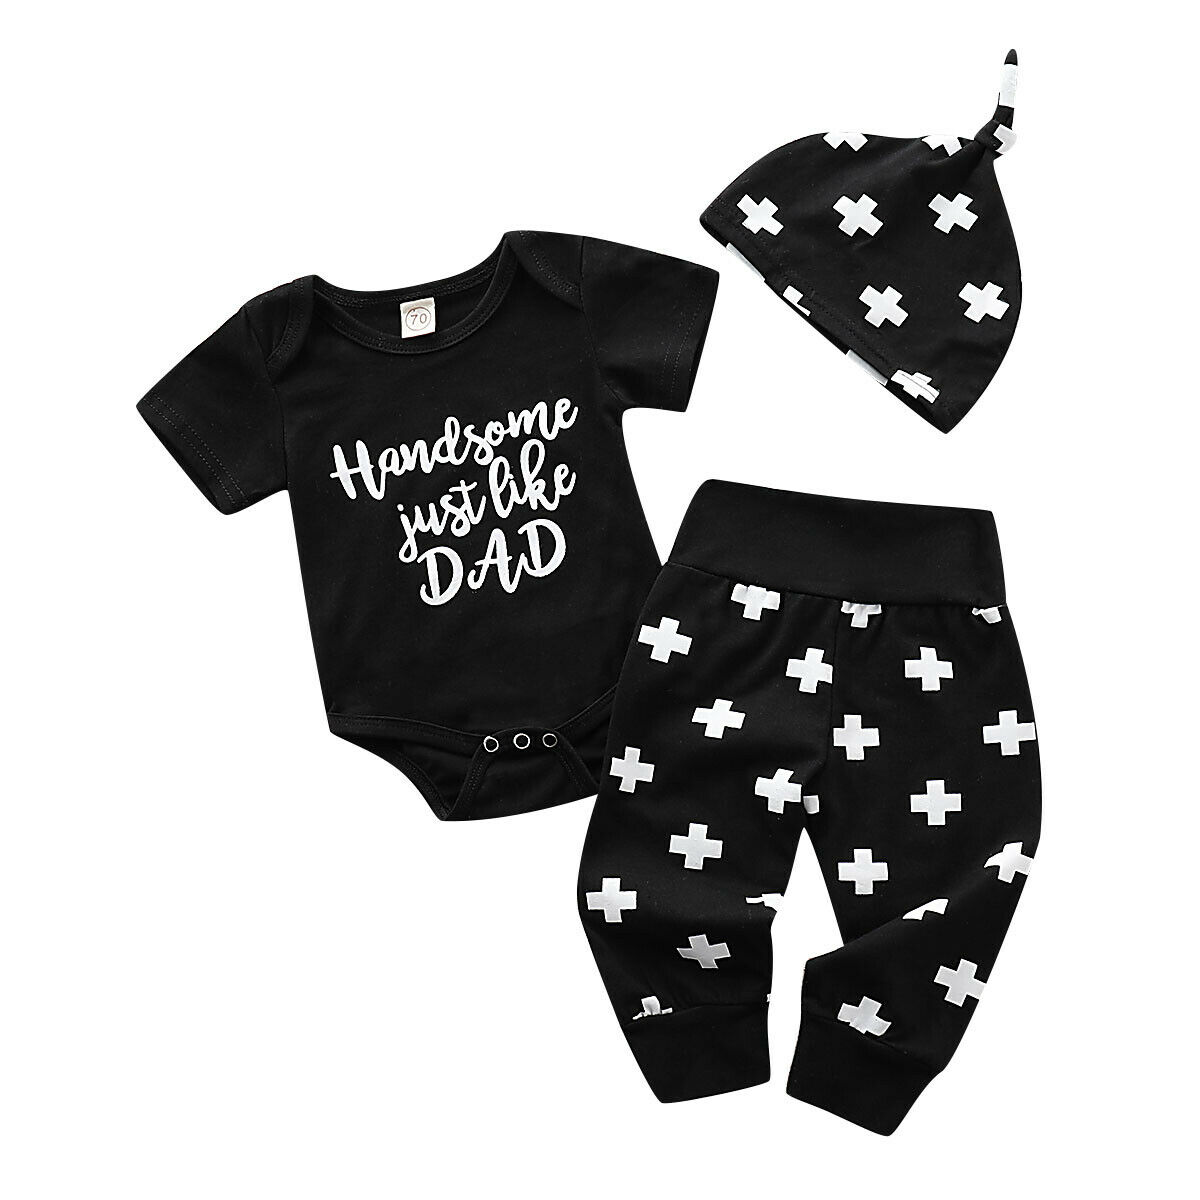 3PCS Set Newborn Baby Boy Girl Short Sleeve Letter Print Cotton Bodysuit Tops Cross Print Long Pant Hat Outfits Baby Clothes